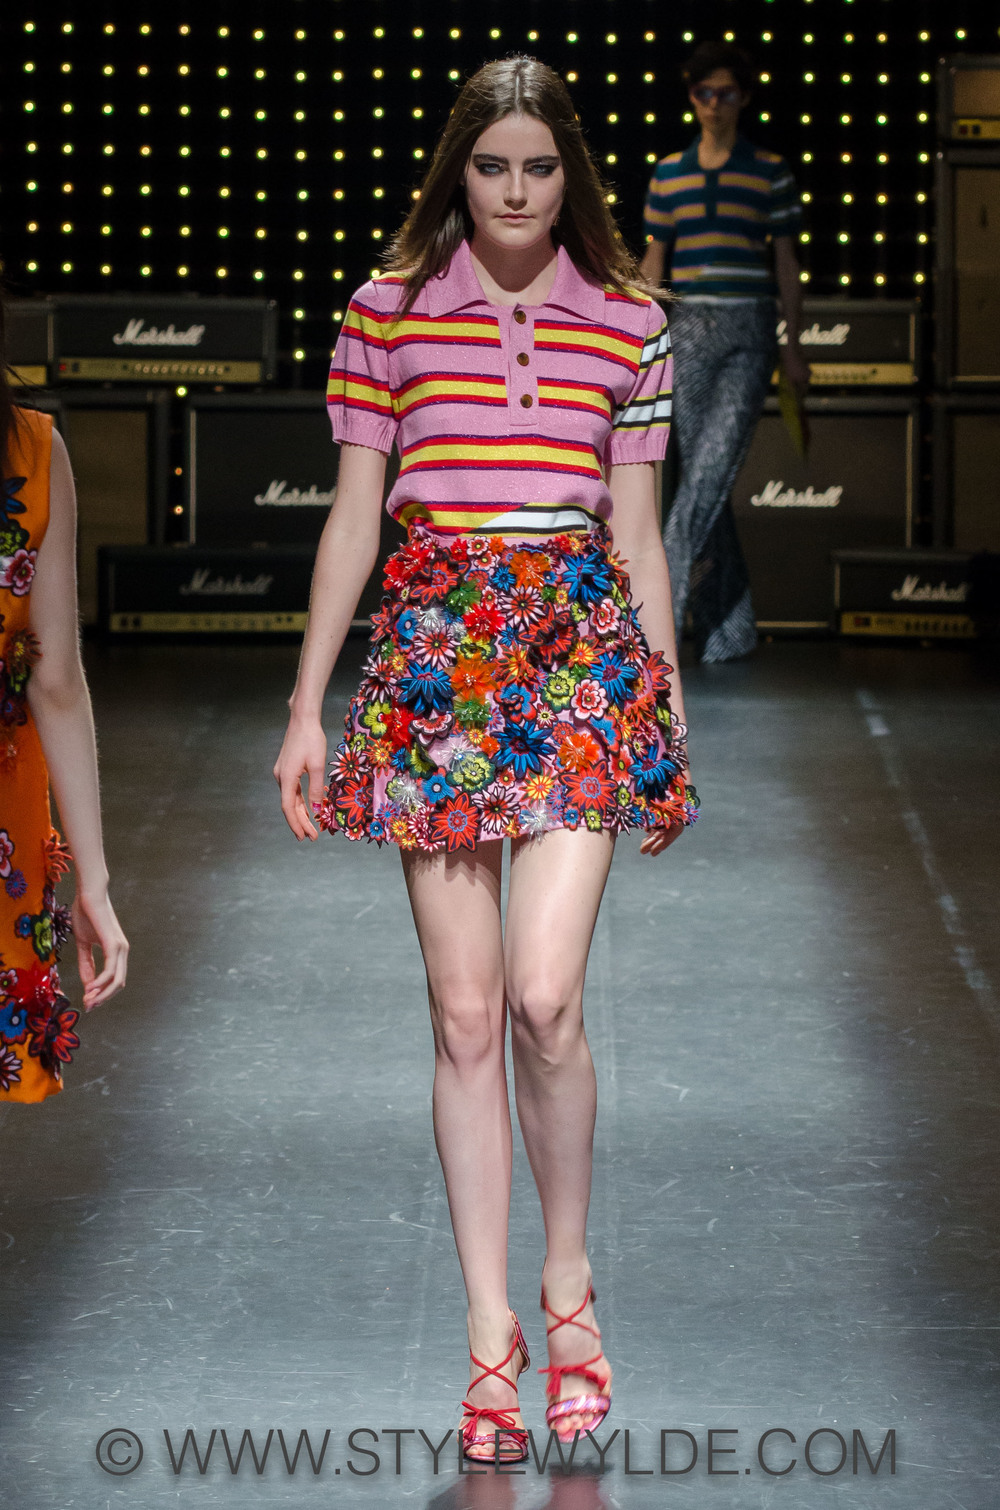 stylewylde_HouseofHolland_SS15 (58 of 68).jpg